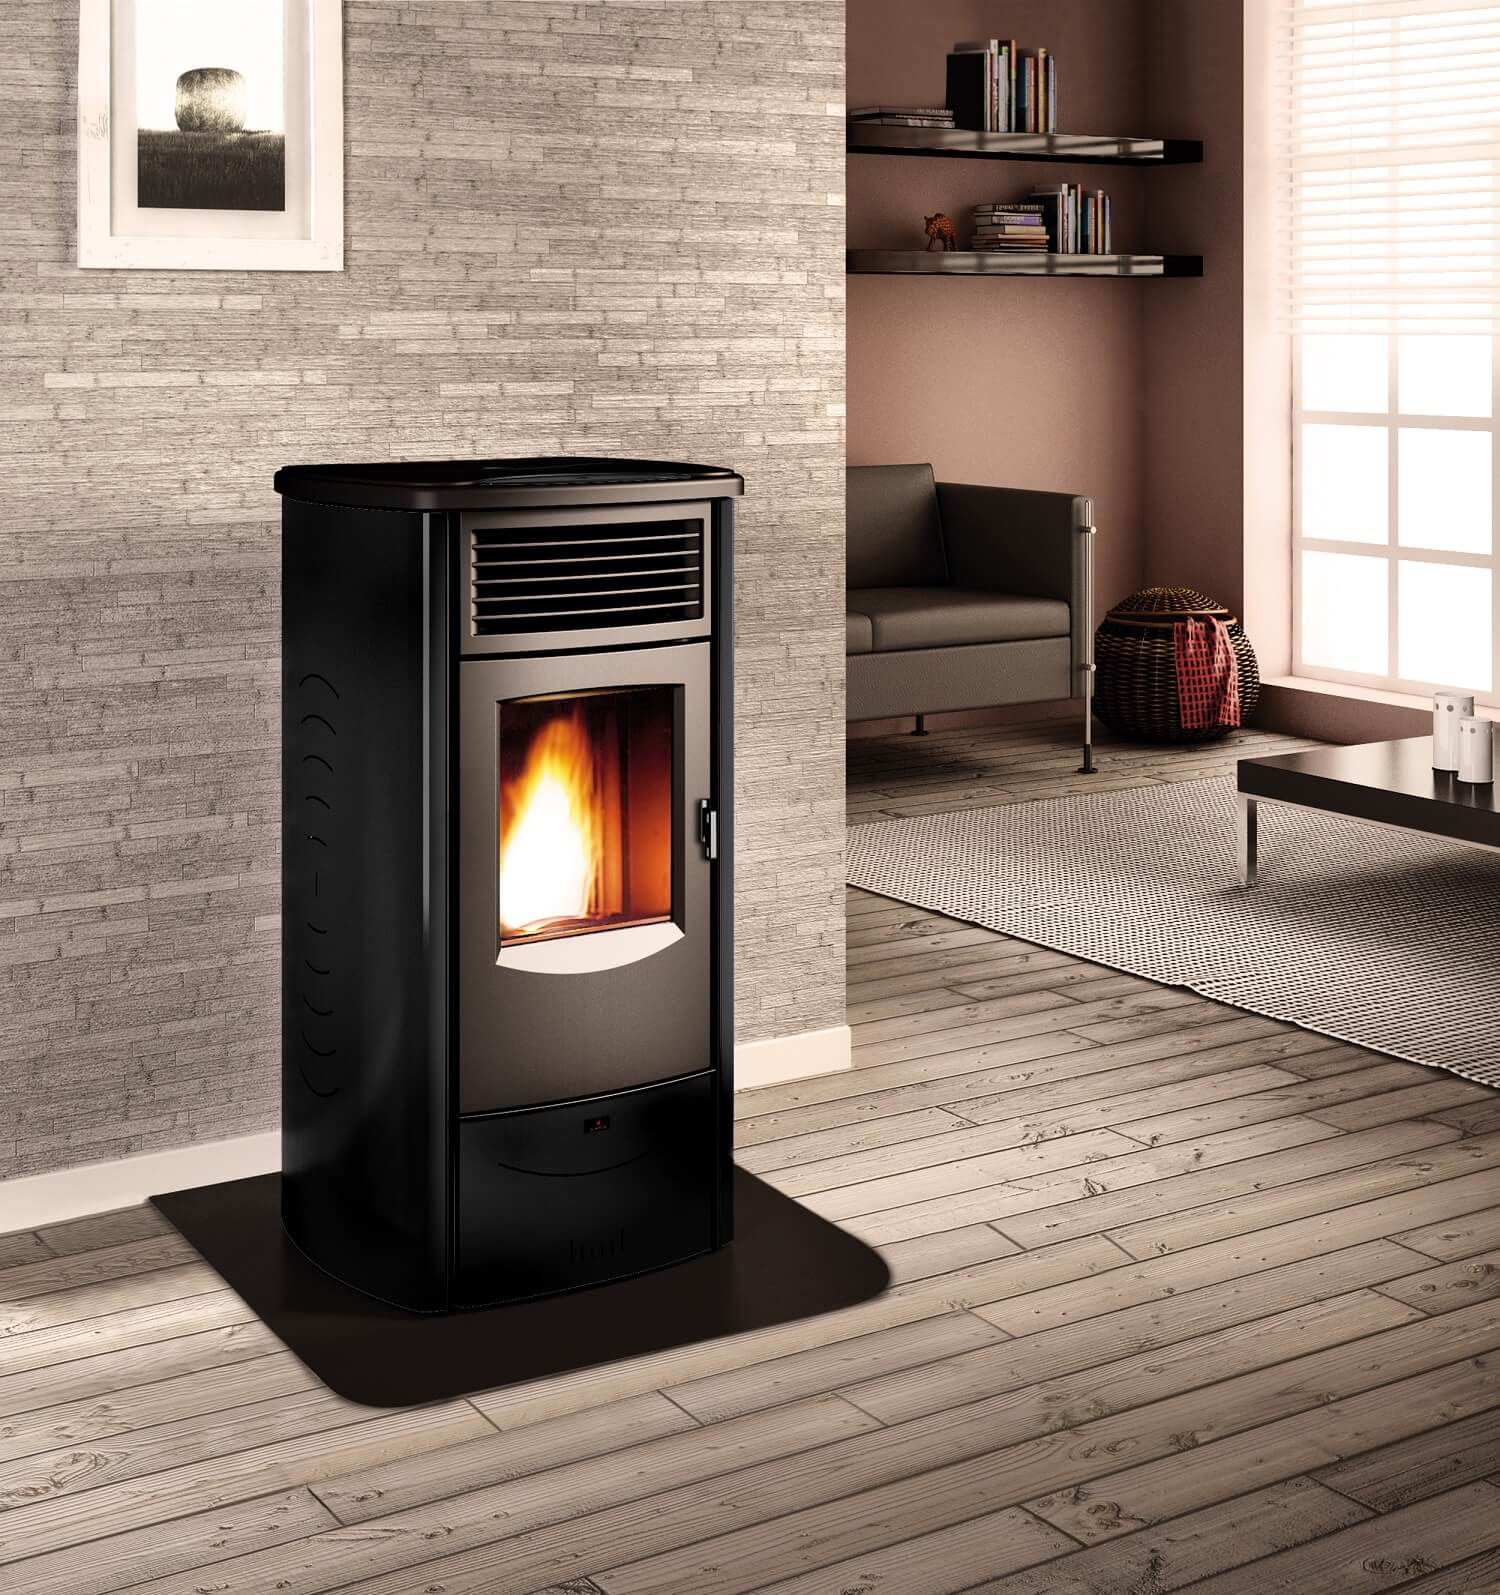 bosca spirit 500 pellet stove poele aux granules pinterest pellet stove wood stoves and woods. Black Bedroom Furniture Sets. Home Design Ideas